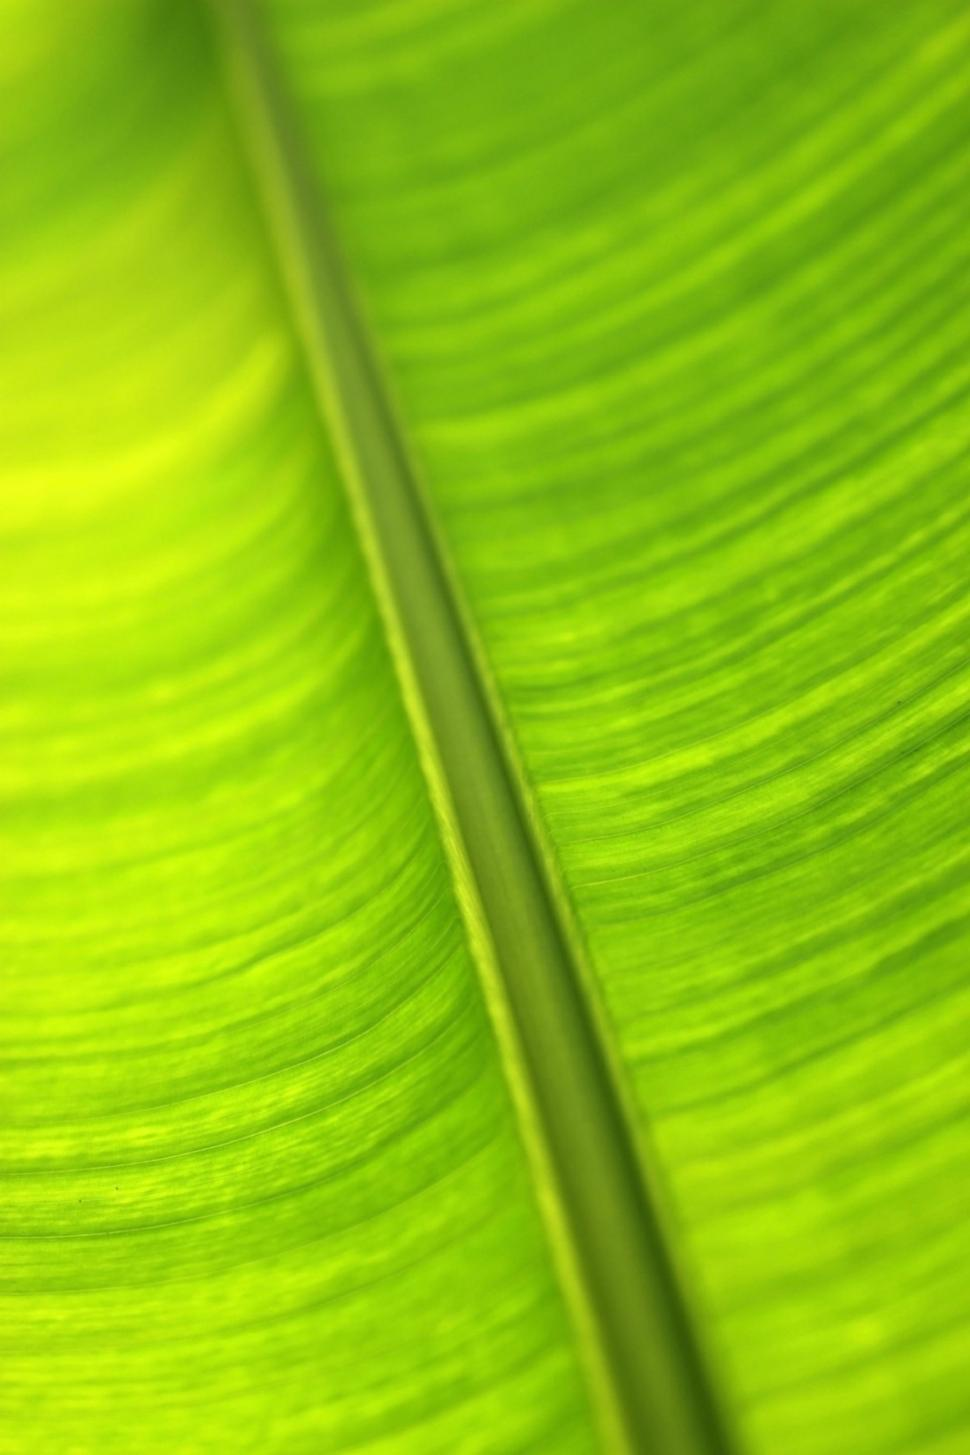 Download Free Stock HD Photo of Backlit green tropical leaf abstract background  Online